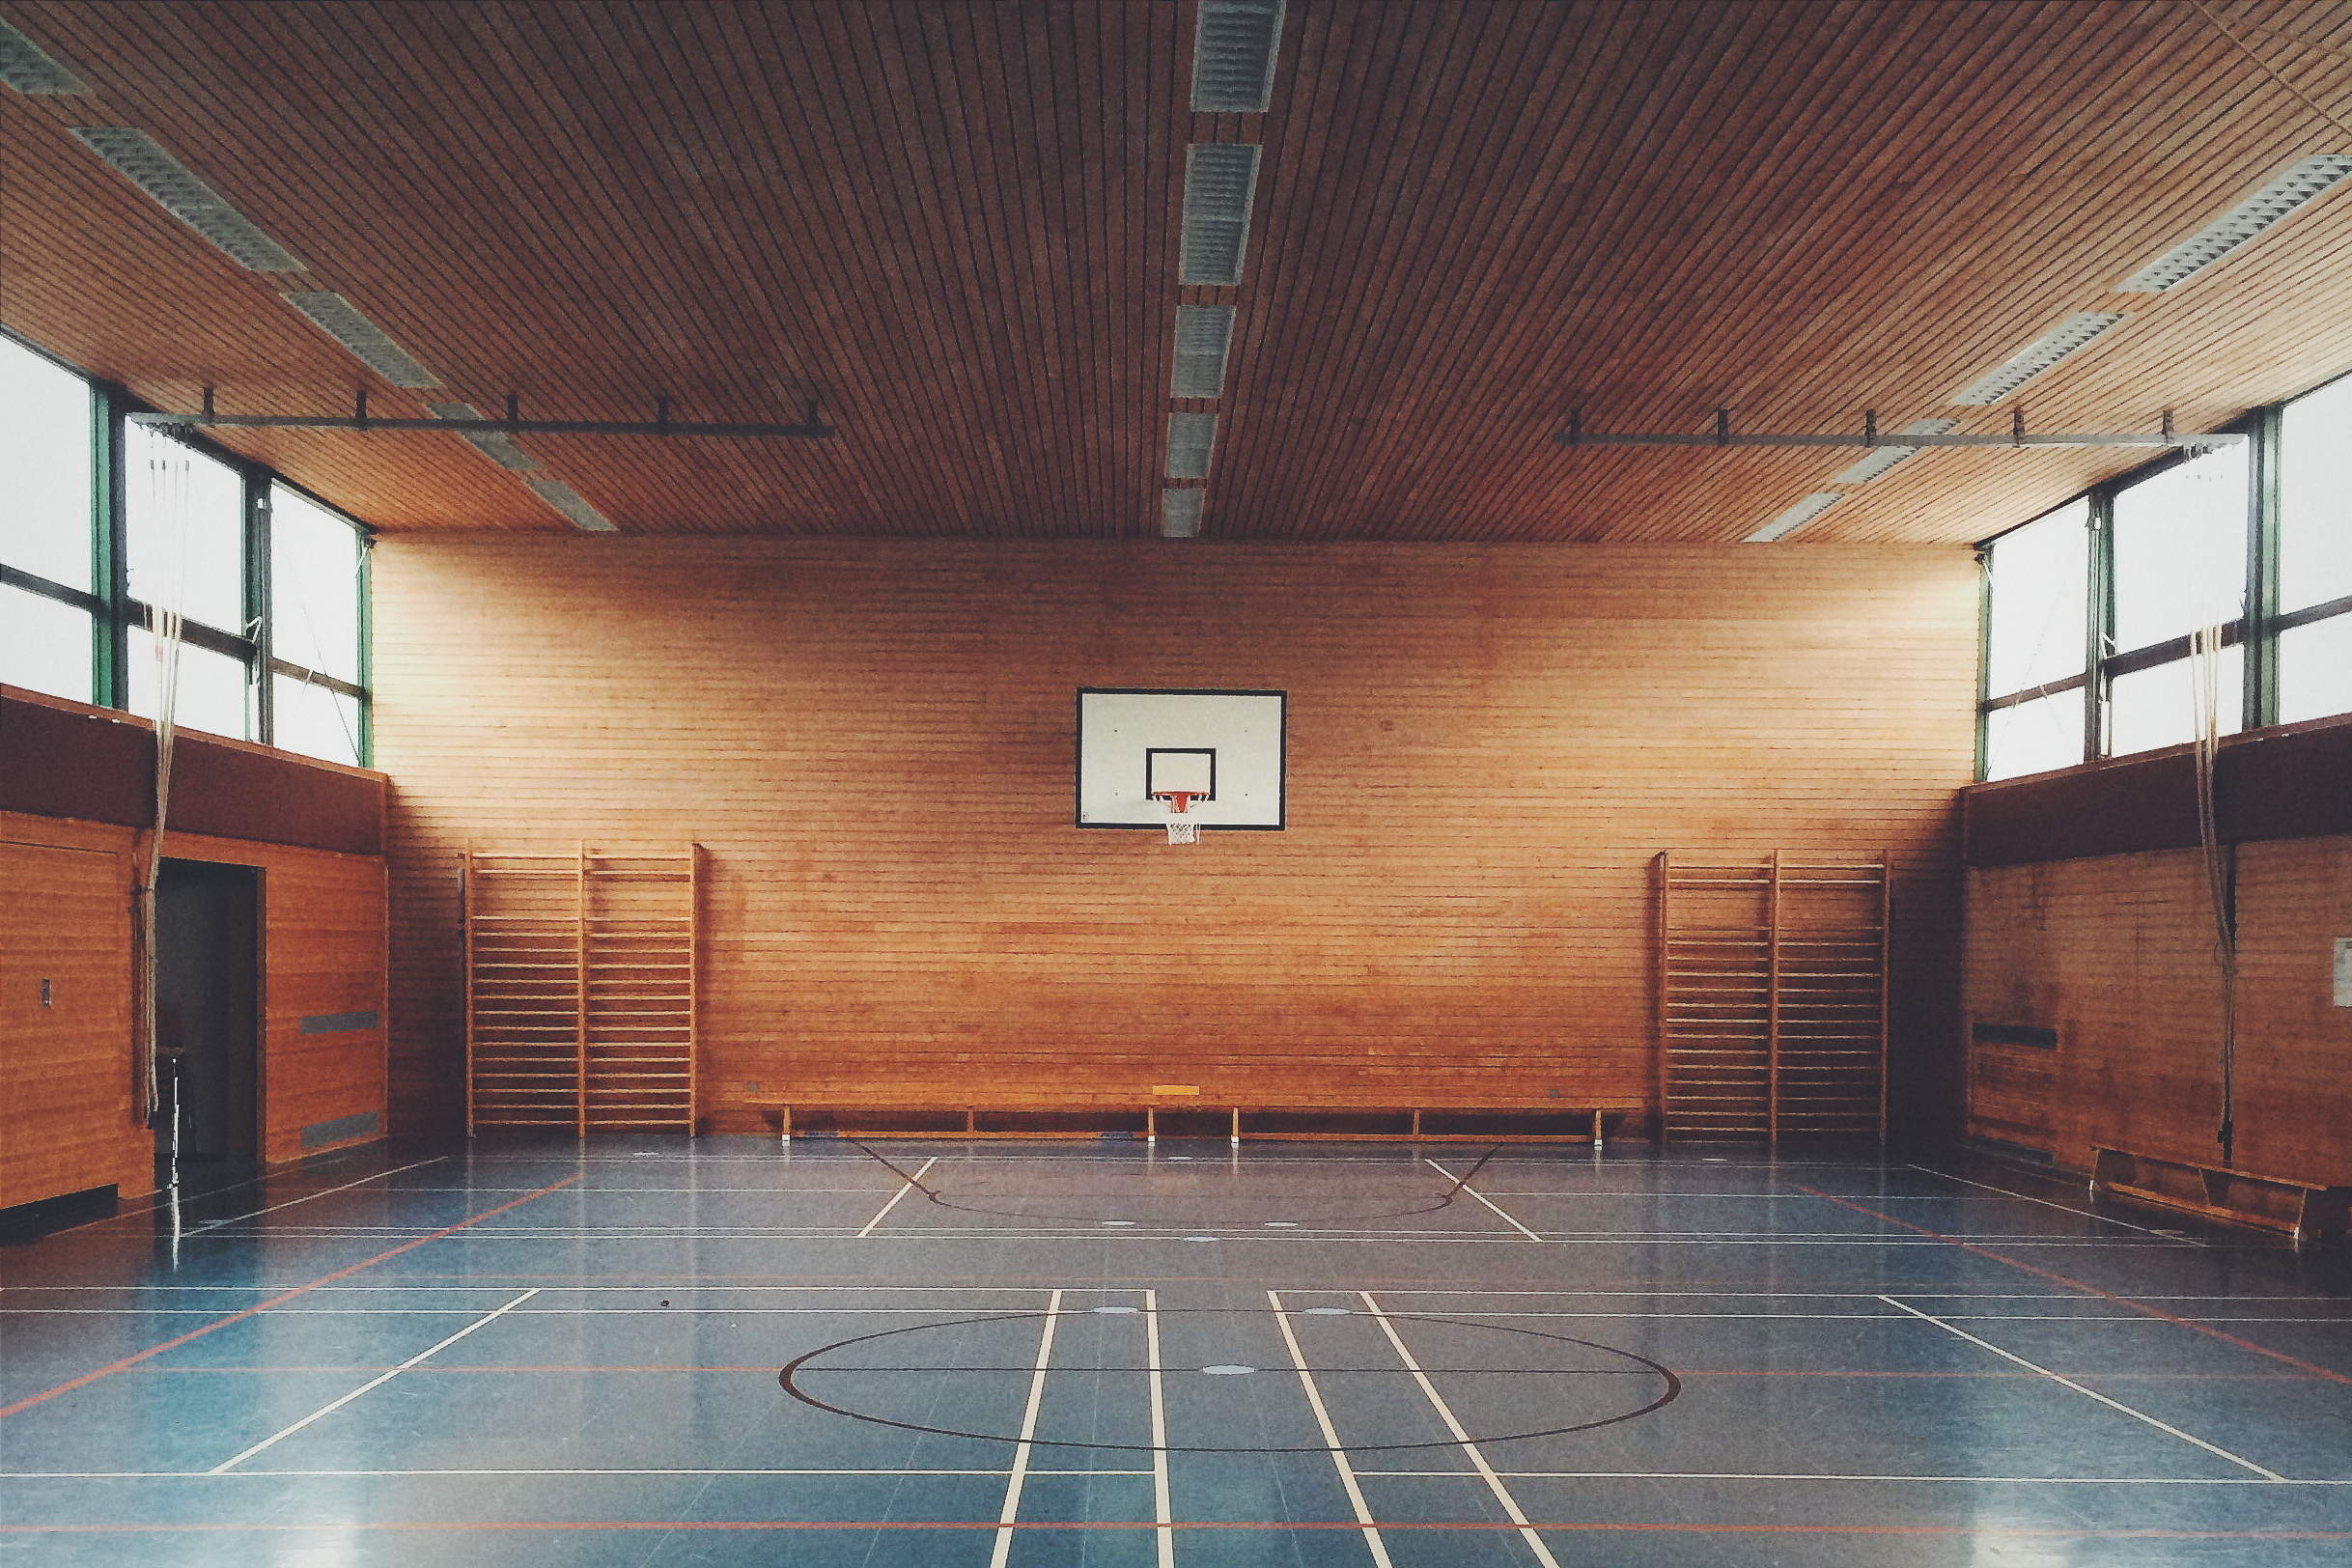 Interior Of Basketball Court In School